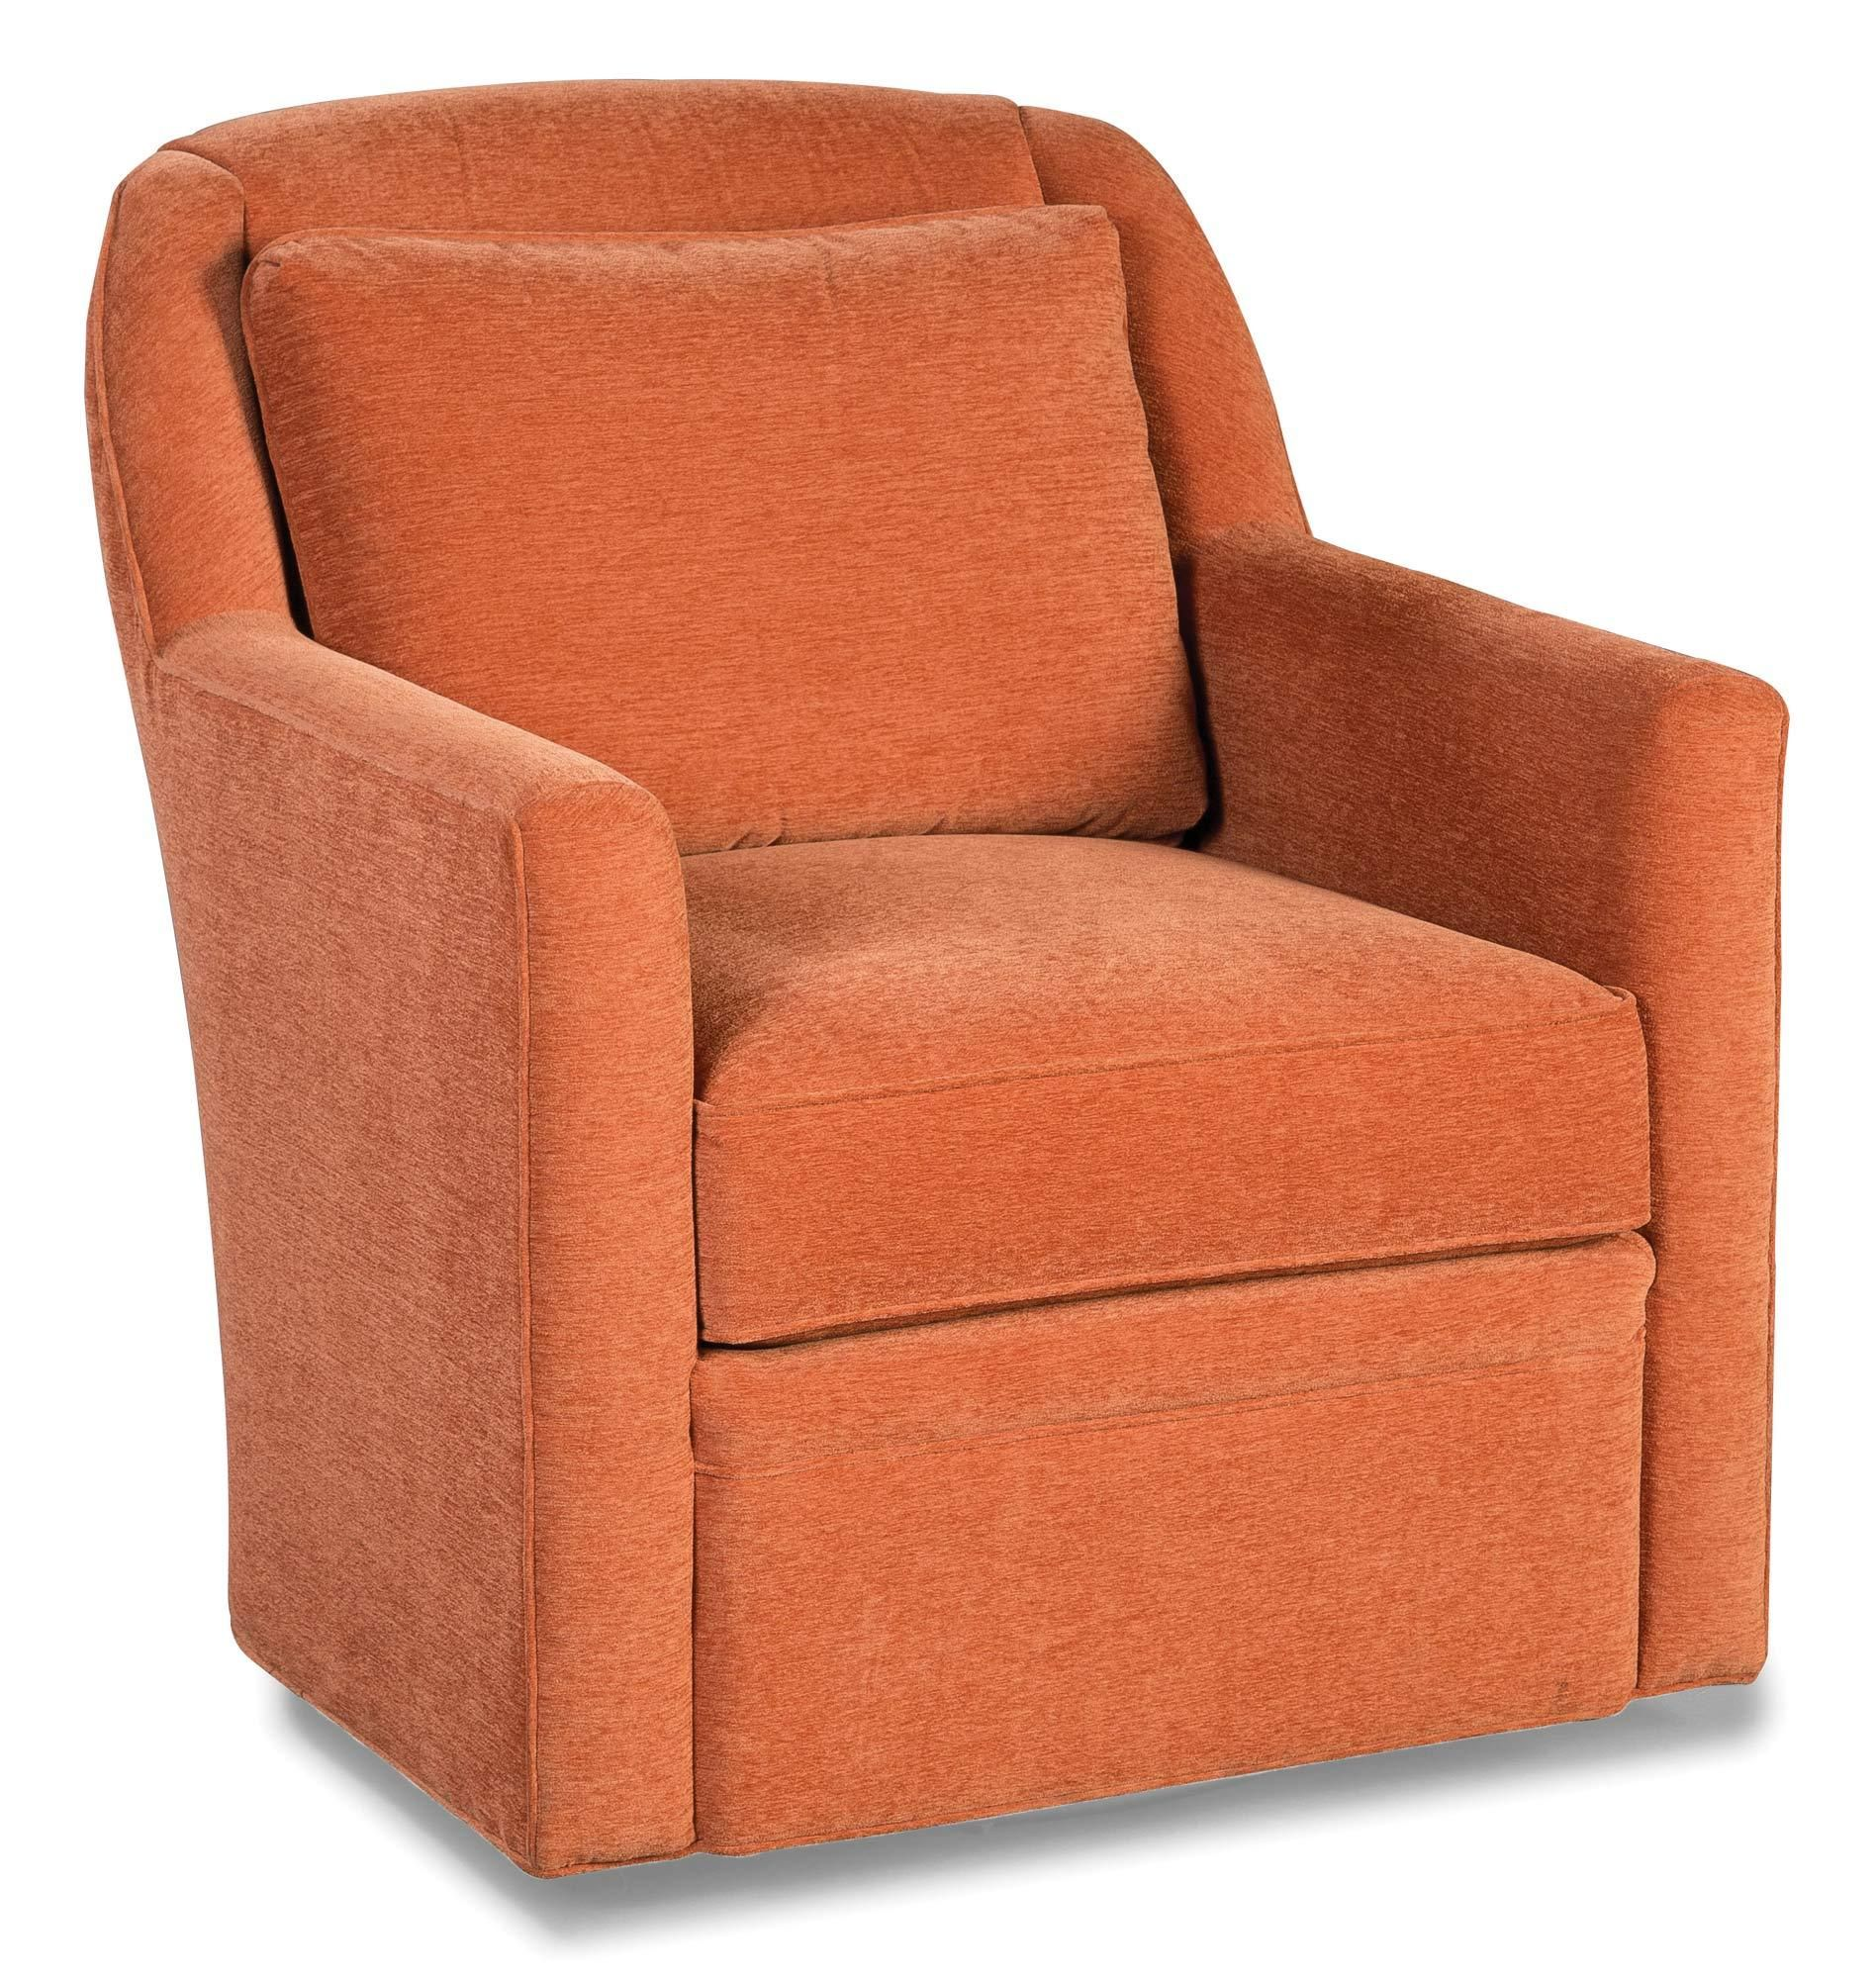 Swivel Chair | Fairfield Chair Company | Home Gallery Stores